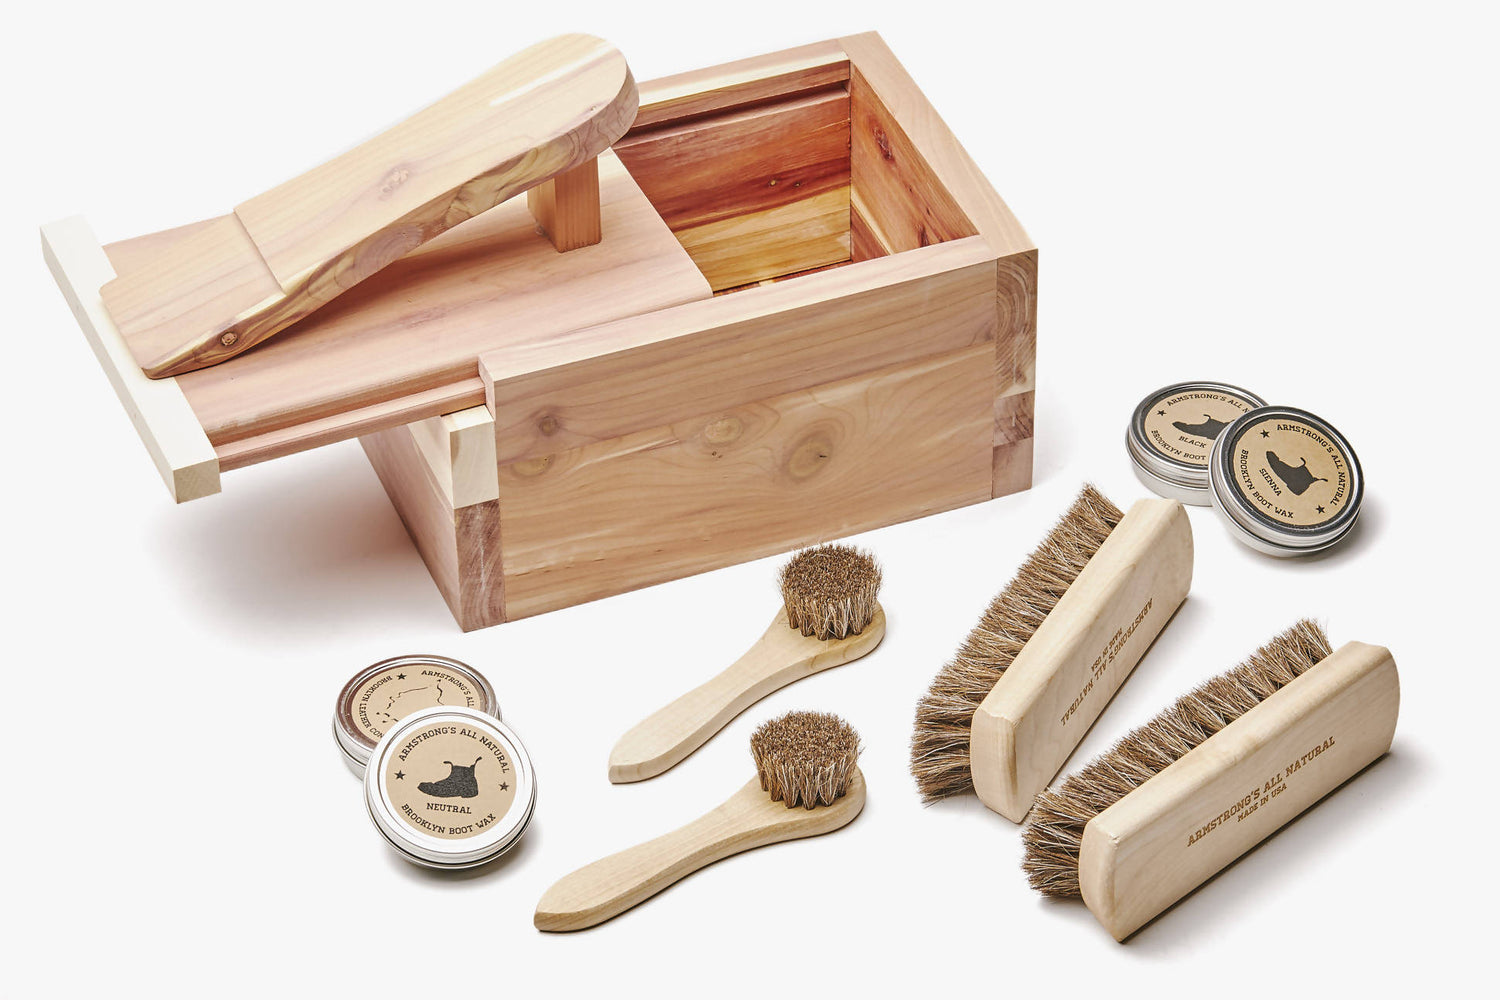 Unpacked Cedar Box with Contents Pictured - 2 Brushes, 2 Daubers, 4 Tins of Cream